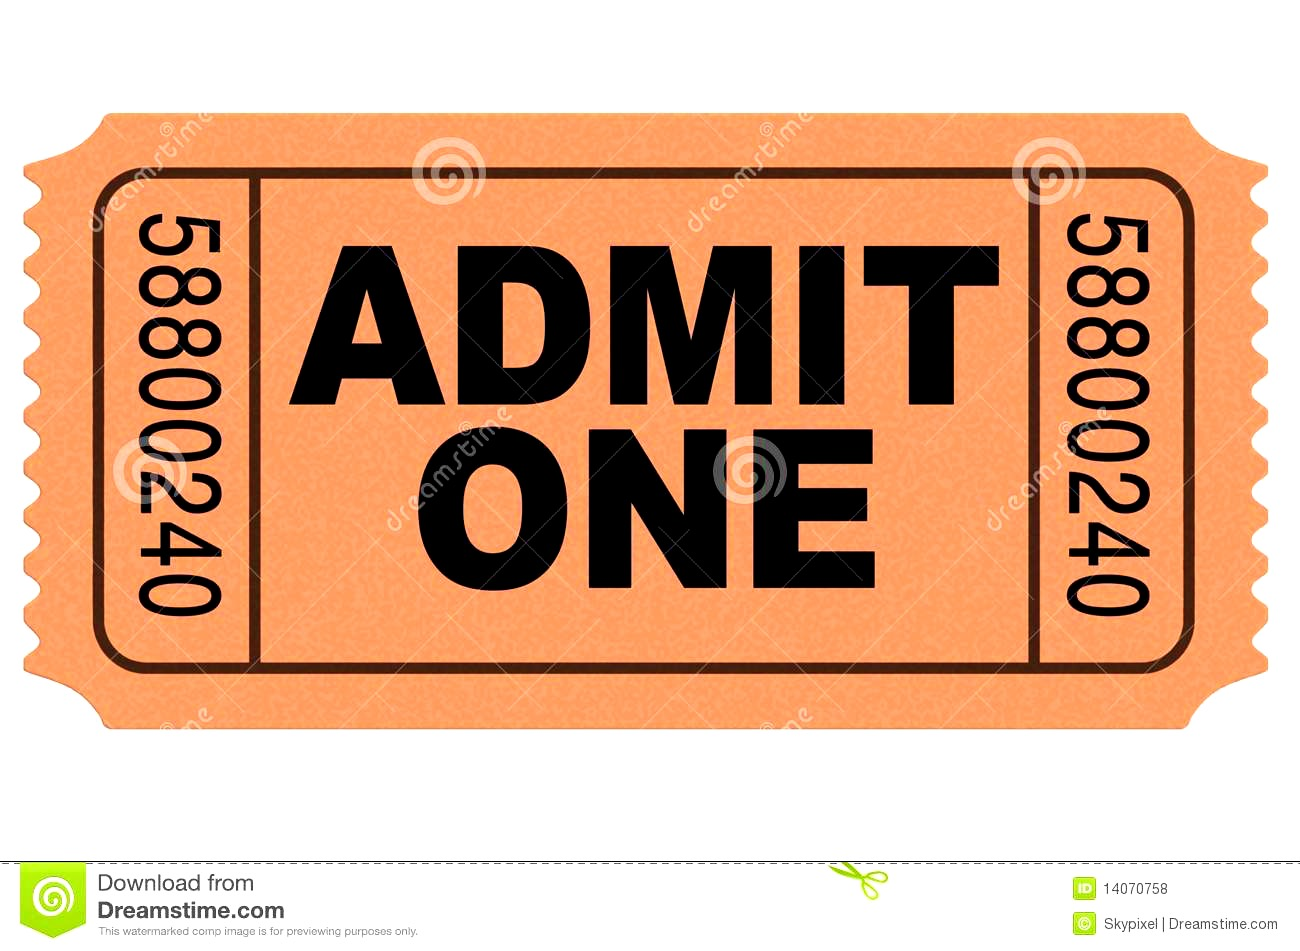 graphic about Admit One Ticket Printable referred to as Blank Ticket Graphic Free of charge obtain excellent Blank Ticket Graphic